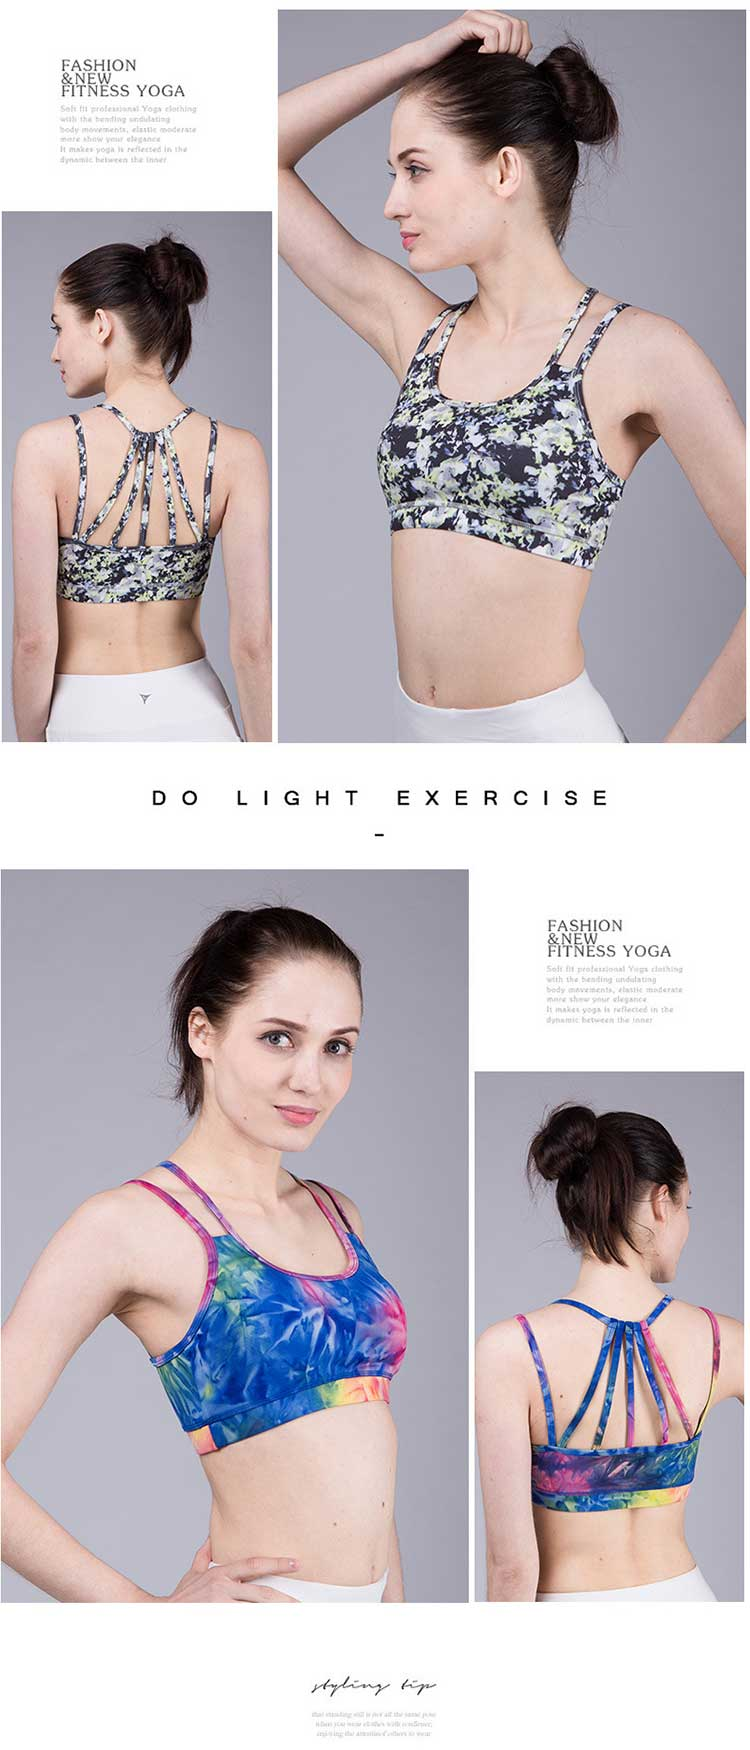 Printed bralette sports bra was born in such a background of demand. It adopts skin-friendly